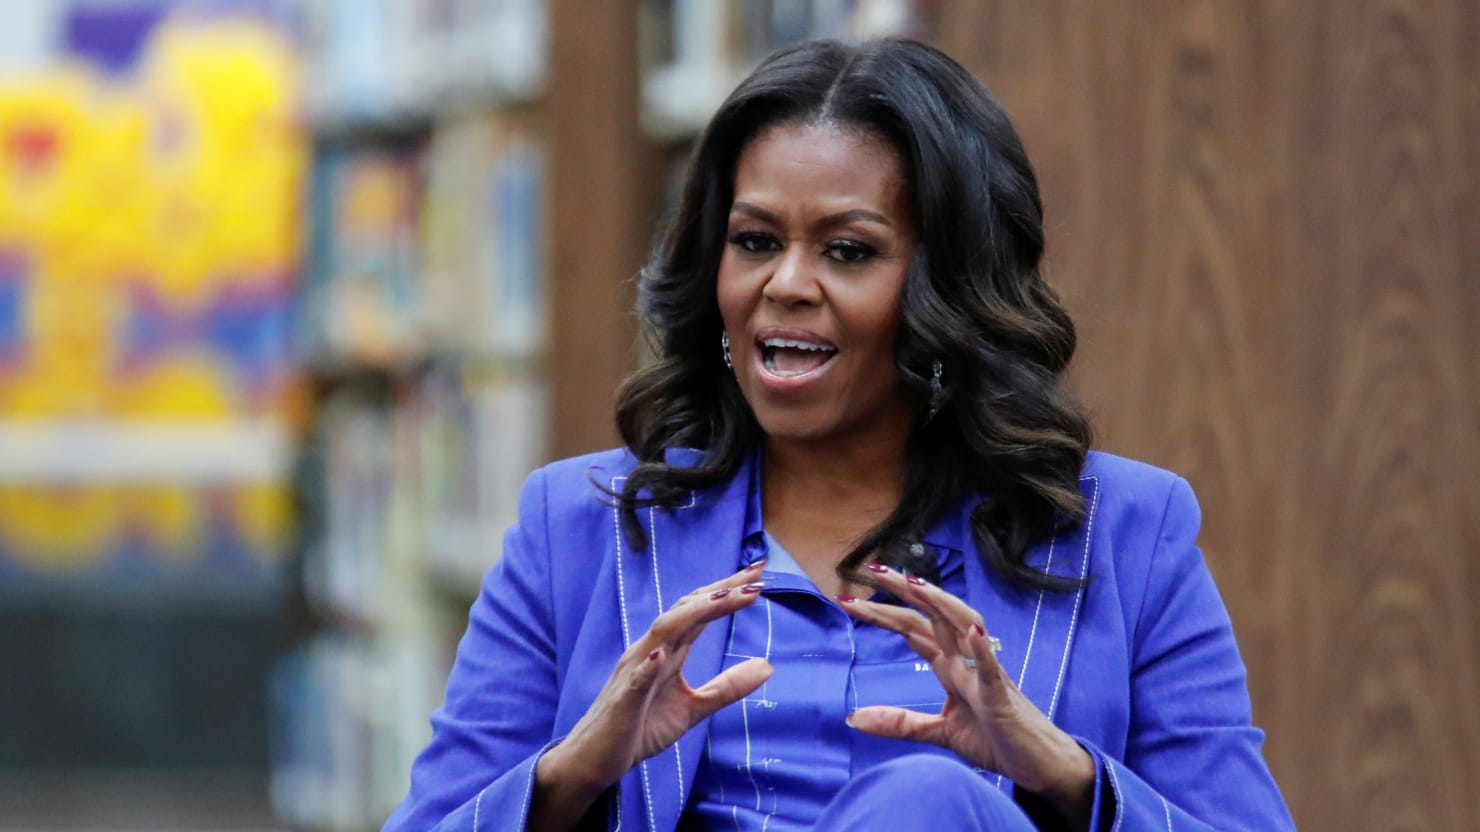 michelle obama ends hillary clinton s 17 year run as america s most